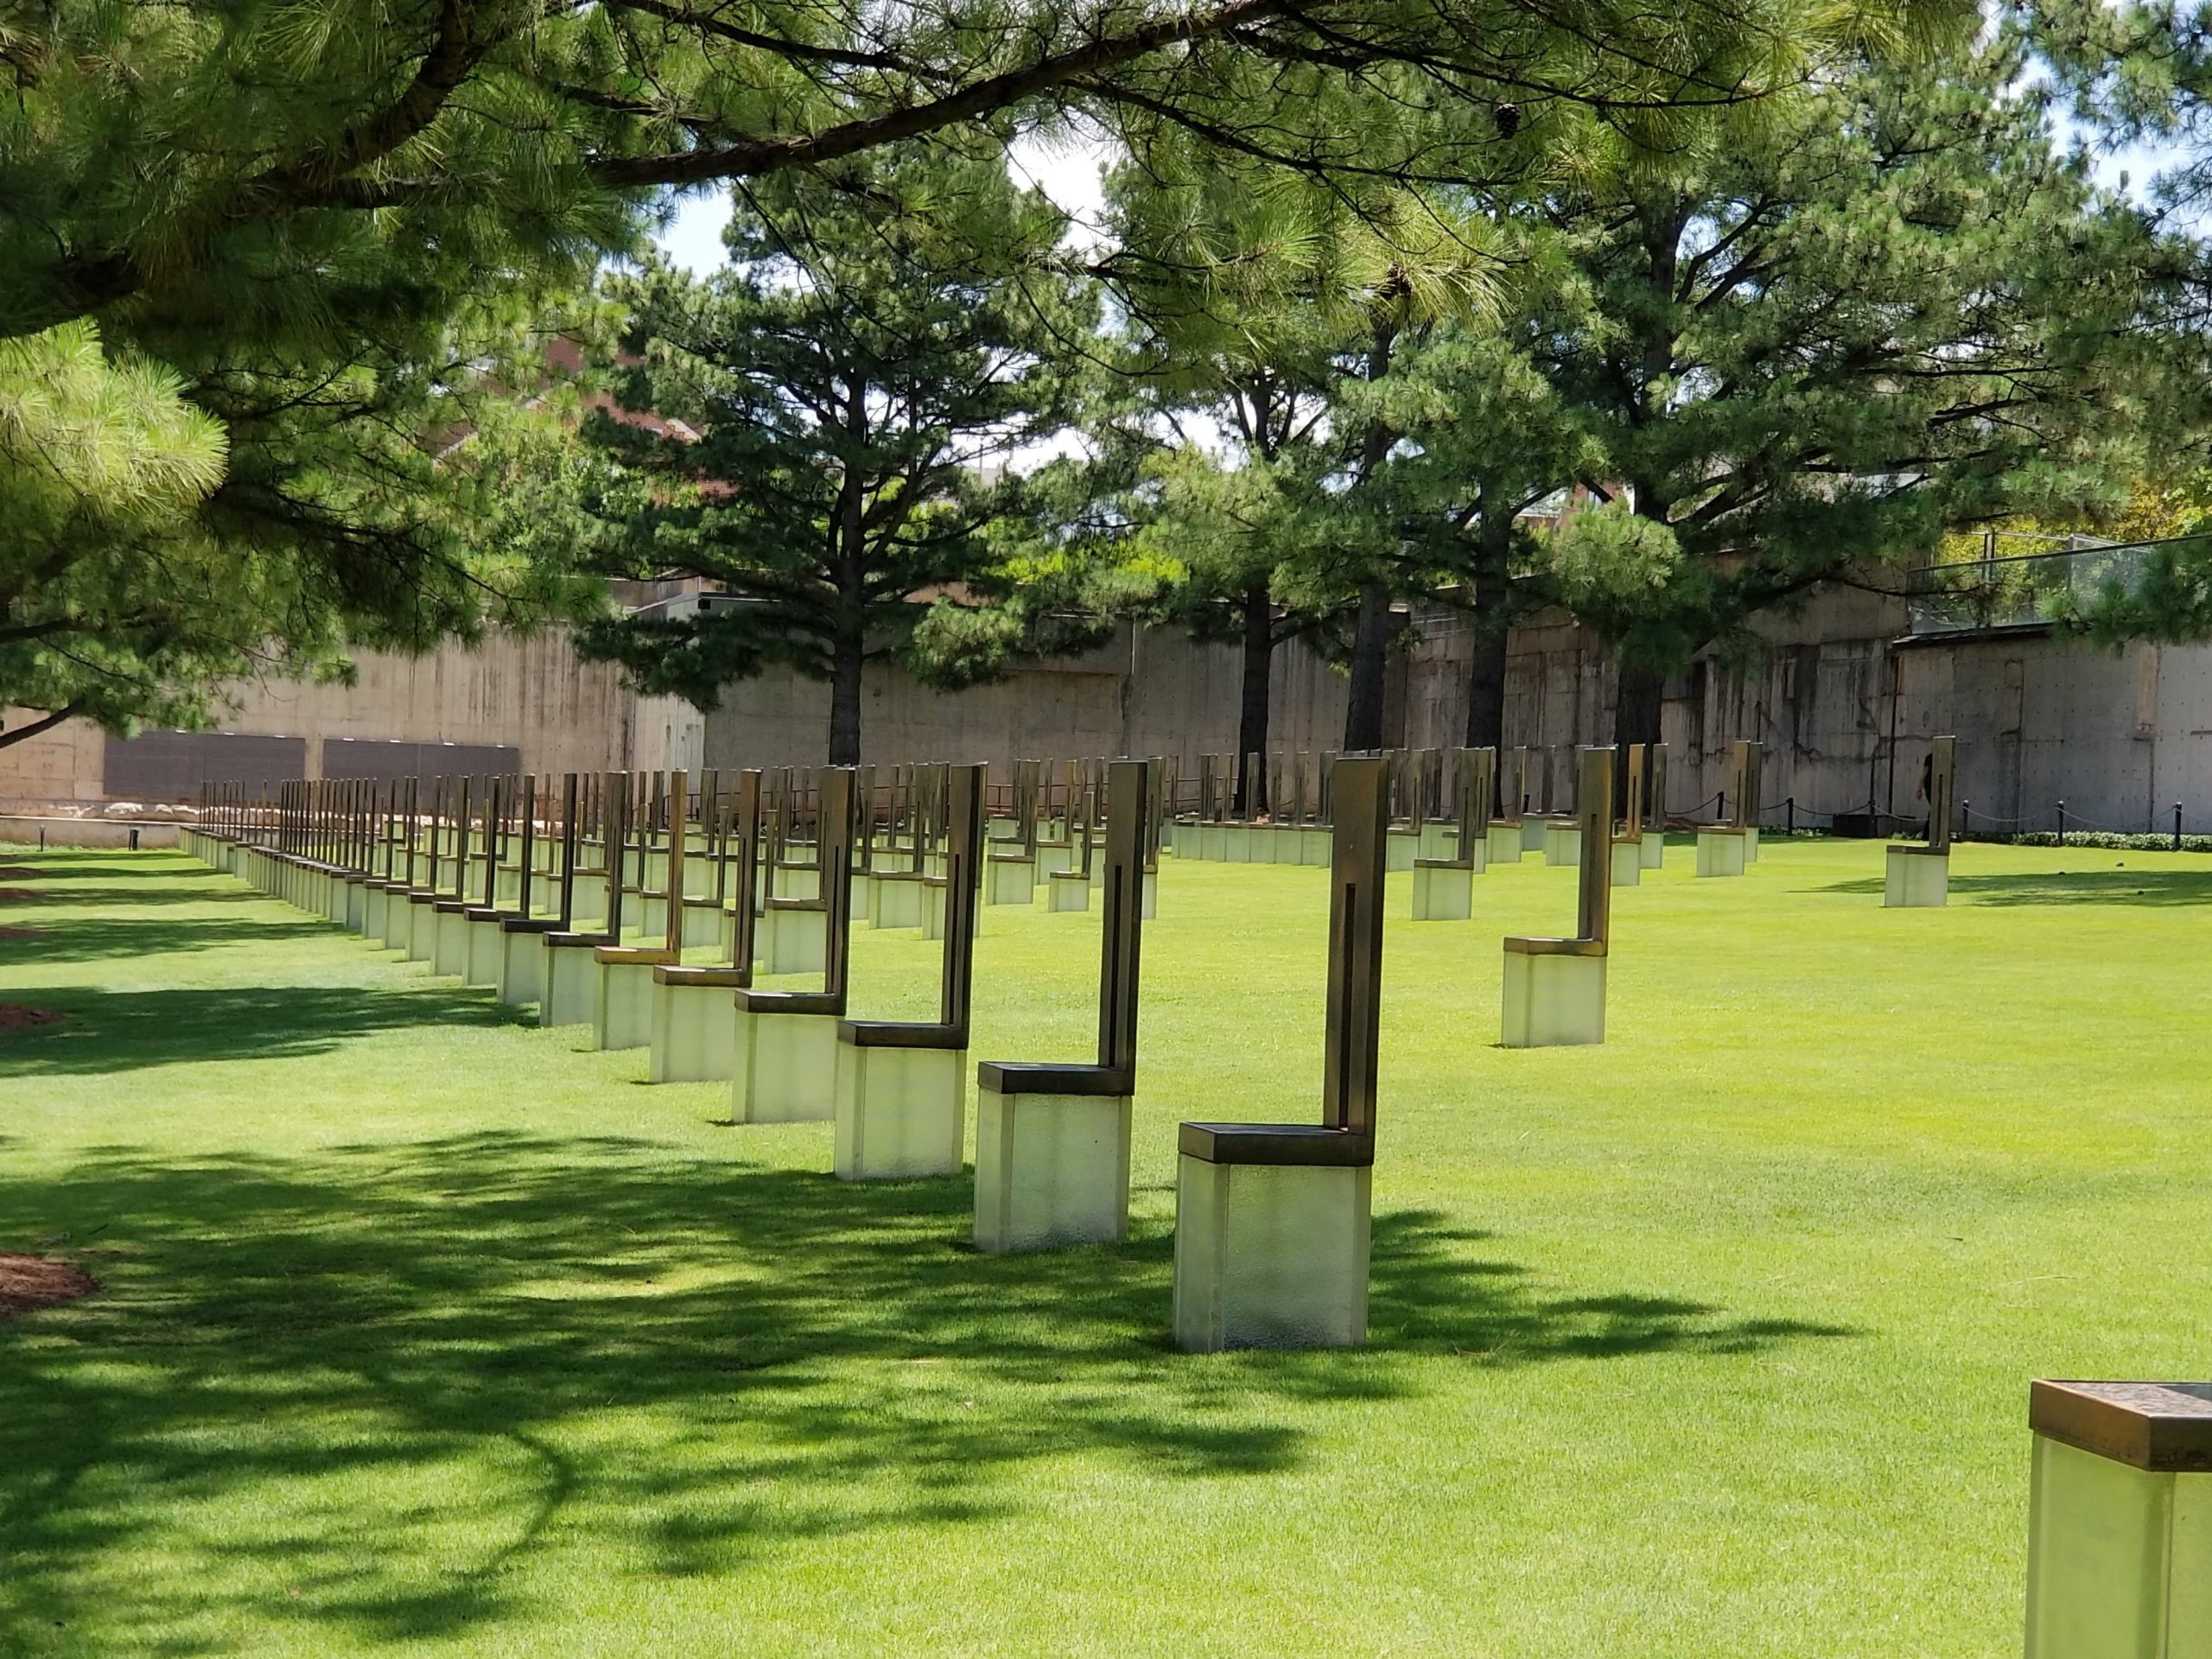 The 168 Chairs represent those killed on April 19, 1995. They stand in nine rows, each representing a floor of the Federal Building where the field is now located. Each chair bears the name of someone killed on that floor. Nineteen smaller chairs stand for the children. ..........................................